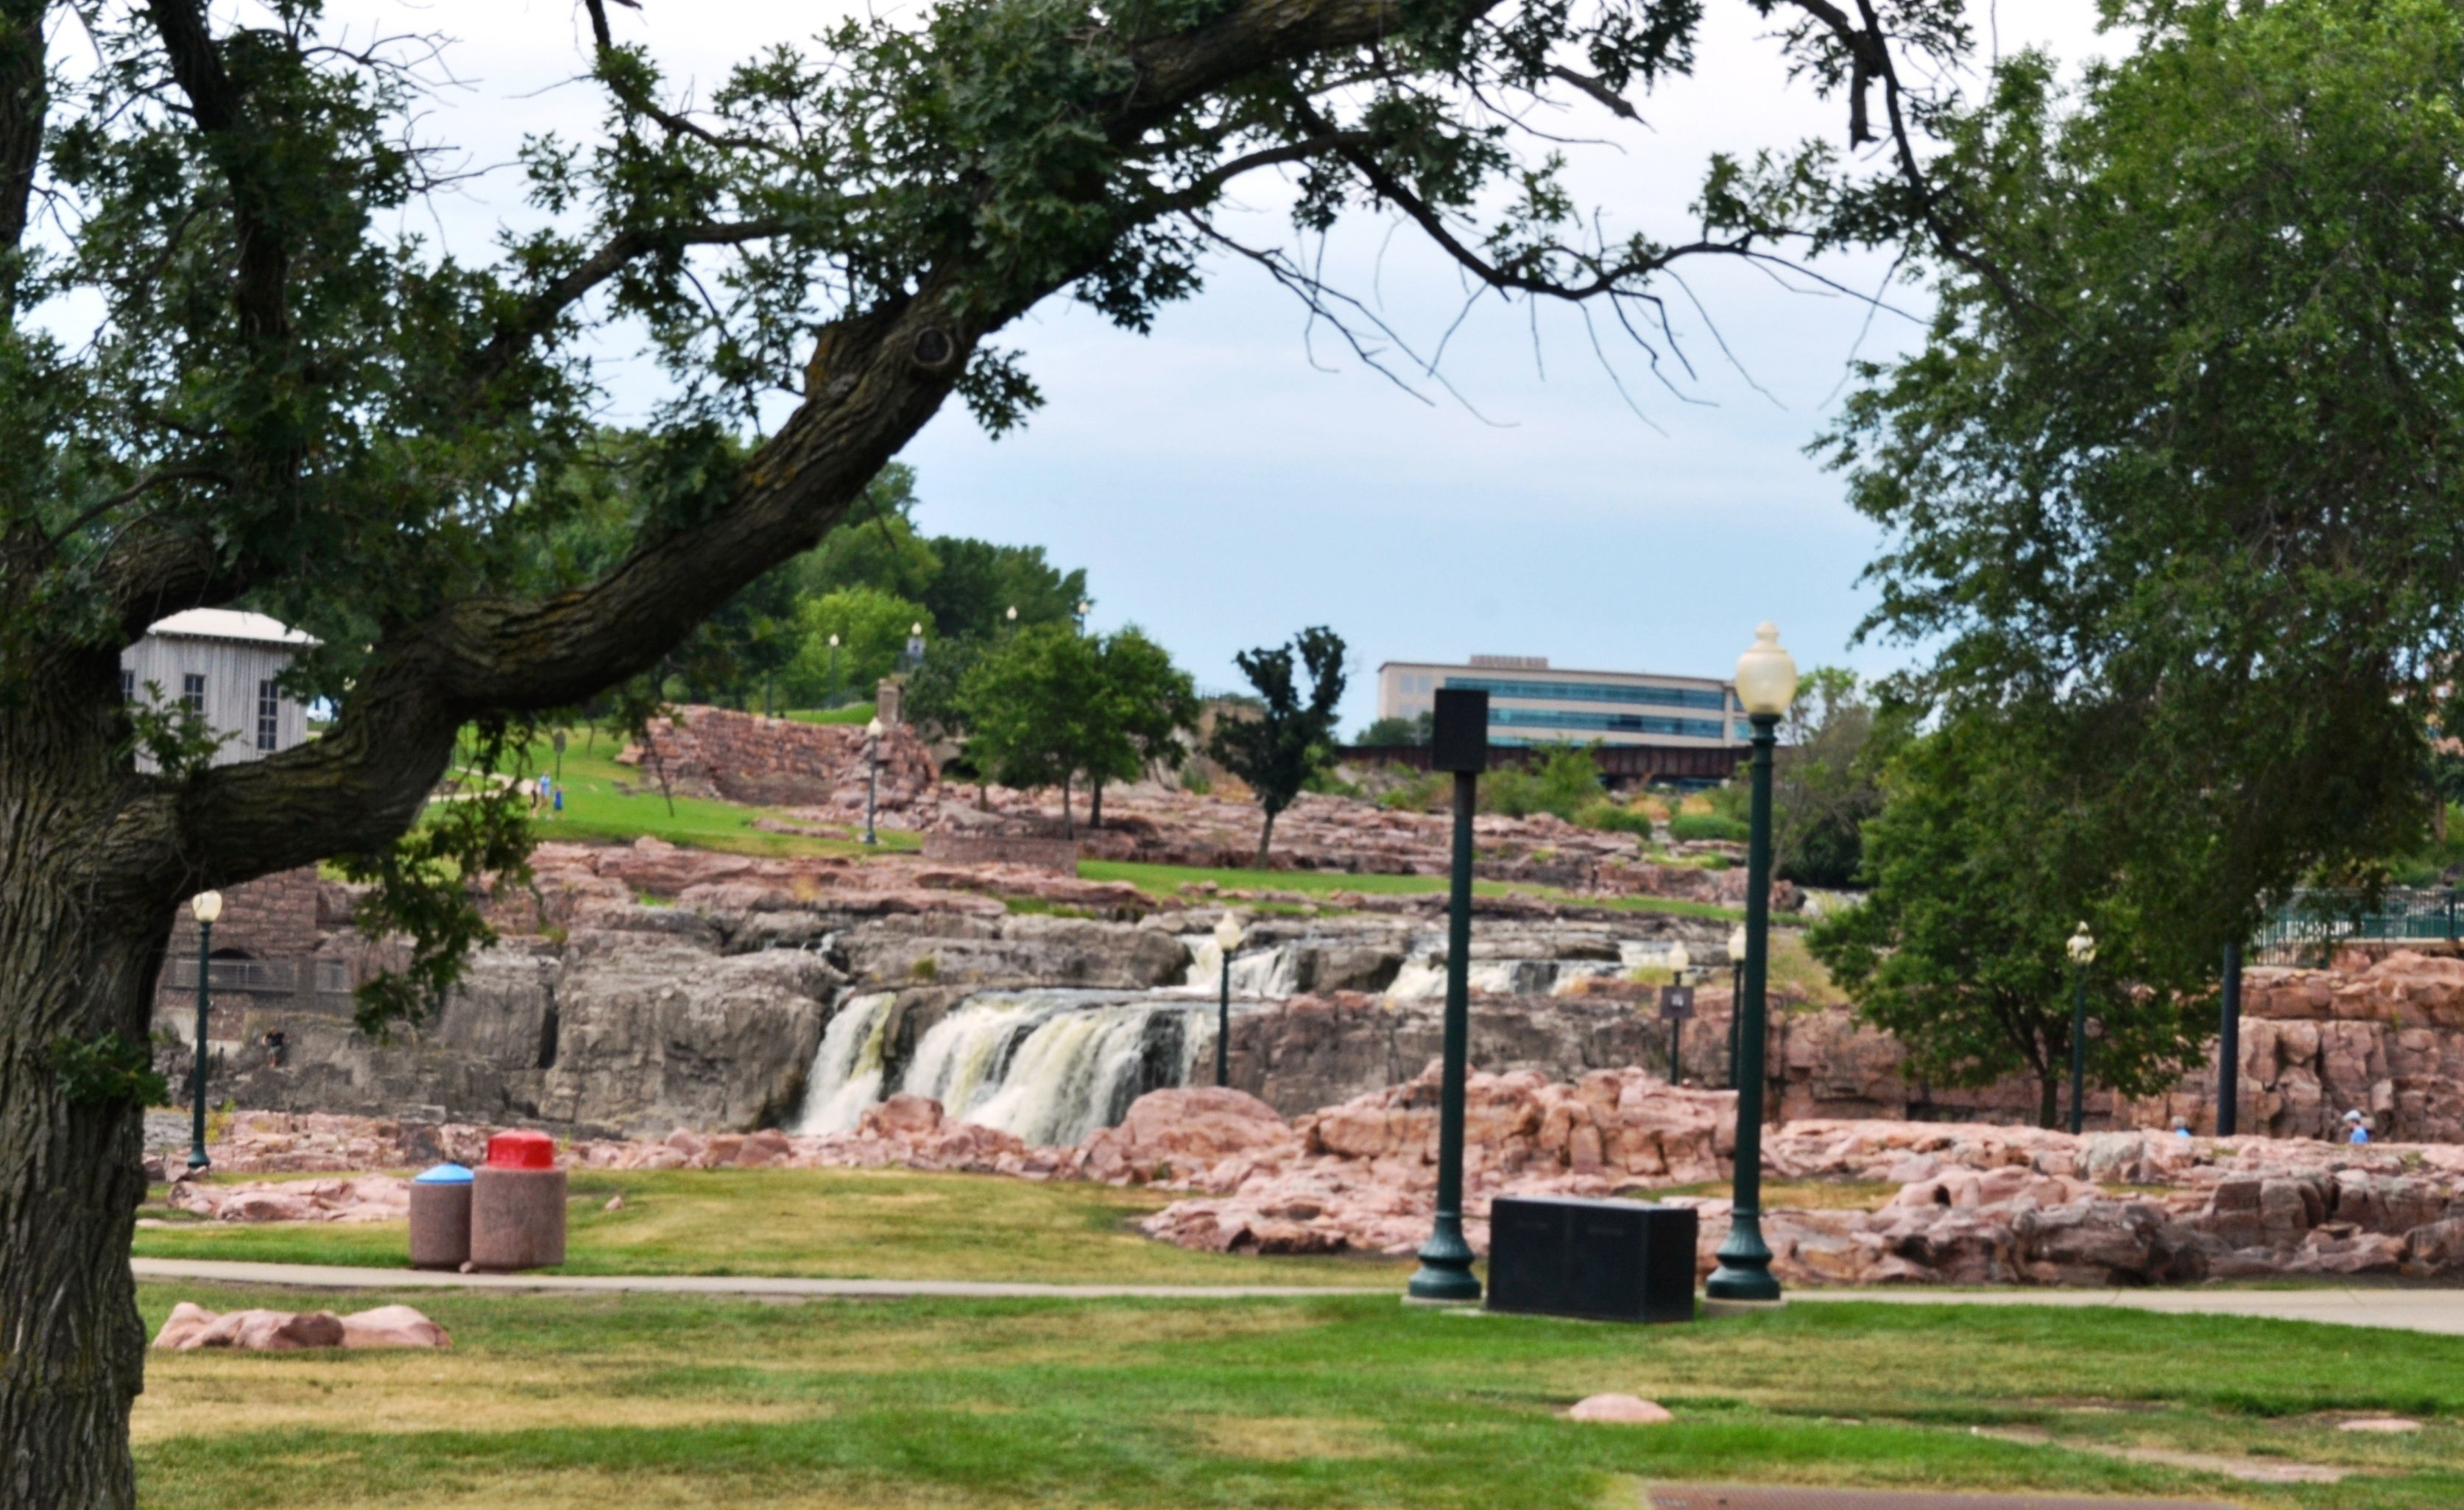 Pt  7, Day 9, GADRT -- Sioux Falls and DeSmet, SD -- see all pix at https://www.youtube.com/watch?v=R7G898udfA4